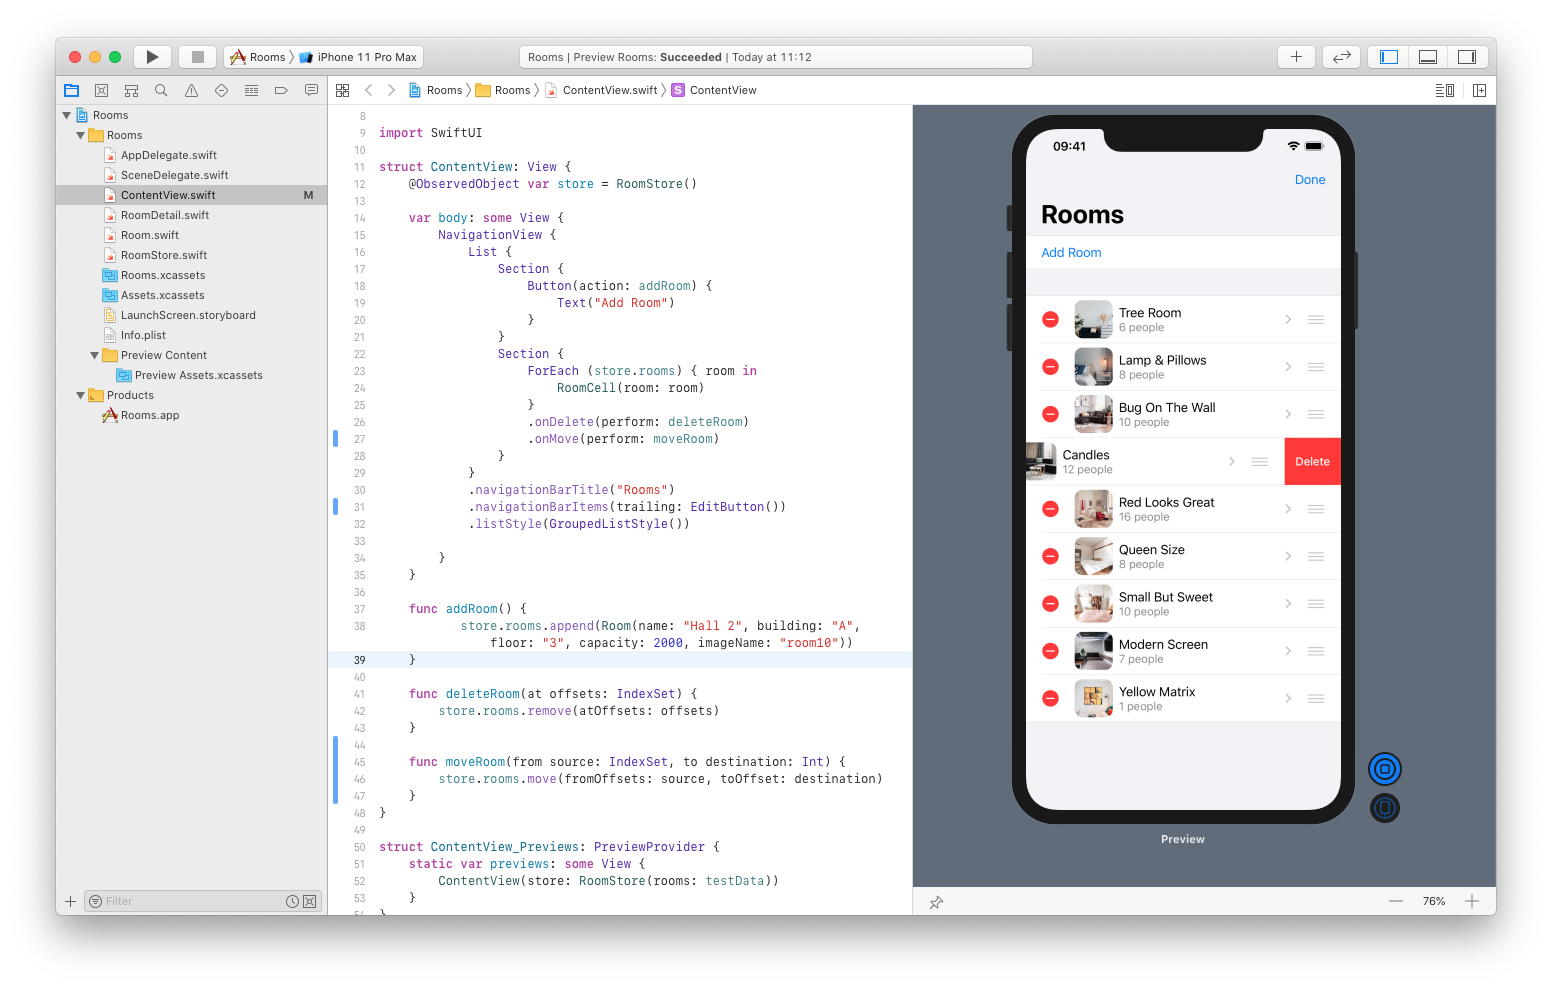 https://res.cloudinary.com/zavrelj/image/upload/v1578455730/codewithjan/swiftui-by-examples/swiftui-by-examples-59.png